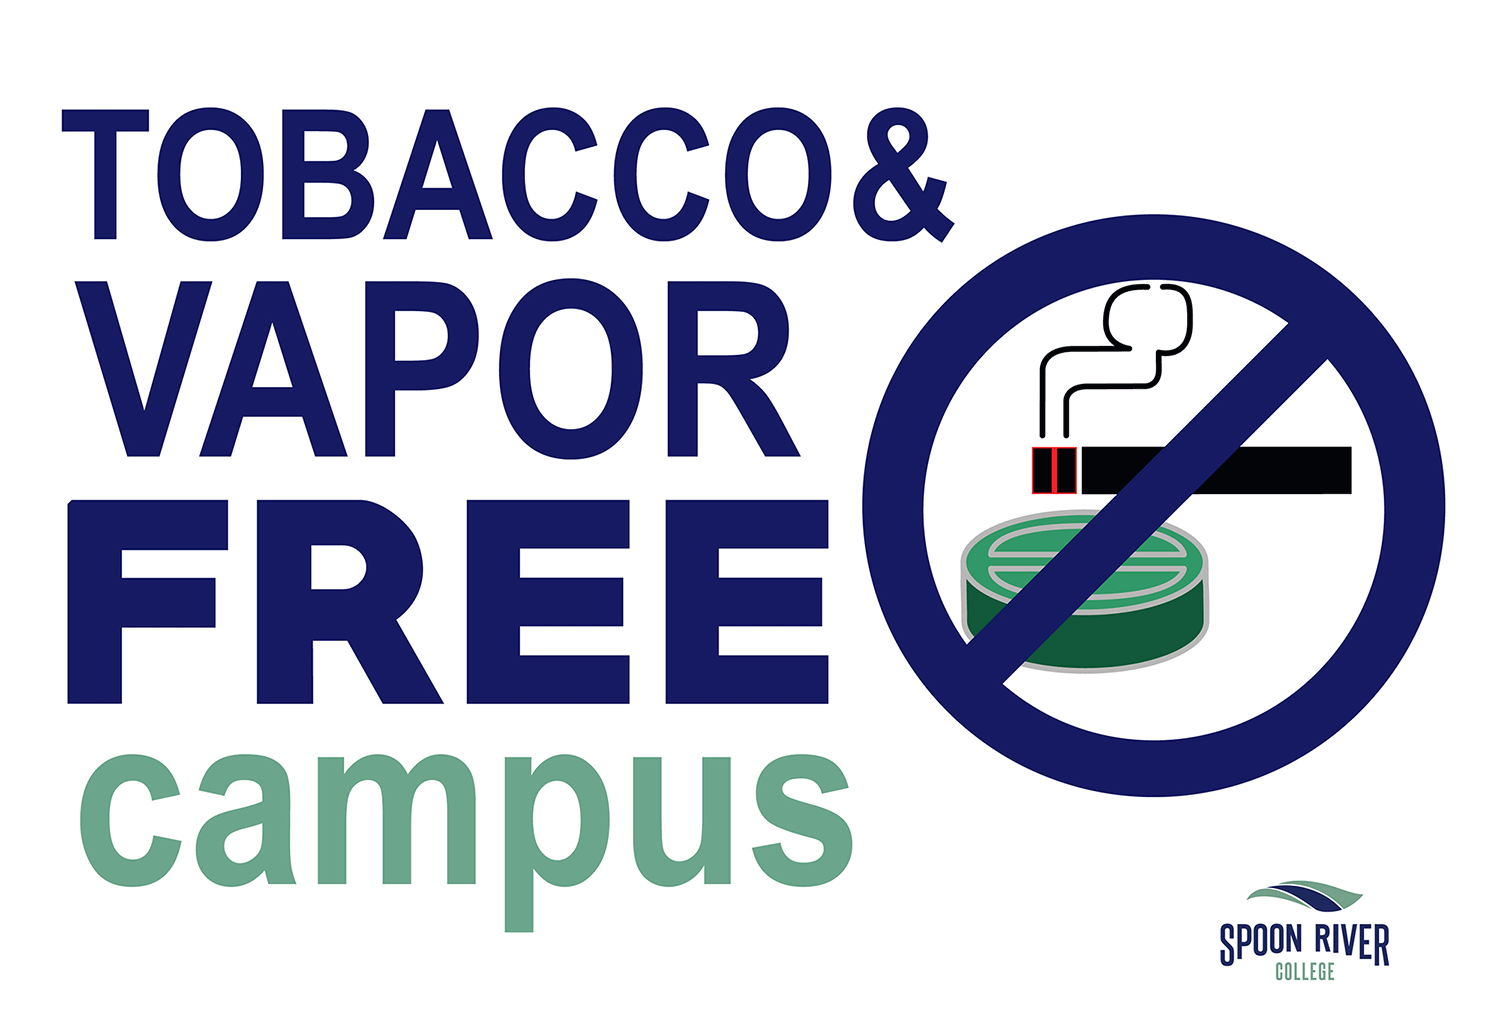 TobaccoFree-afterJuly1-forwebsite.jpg